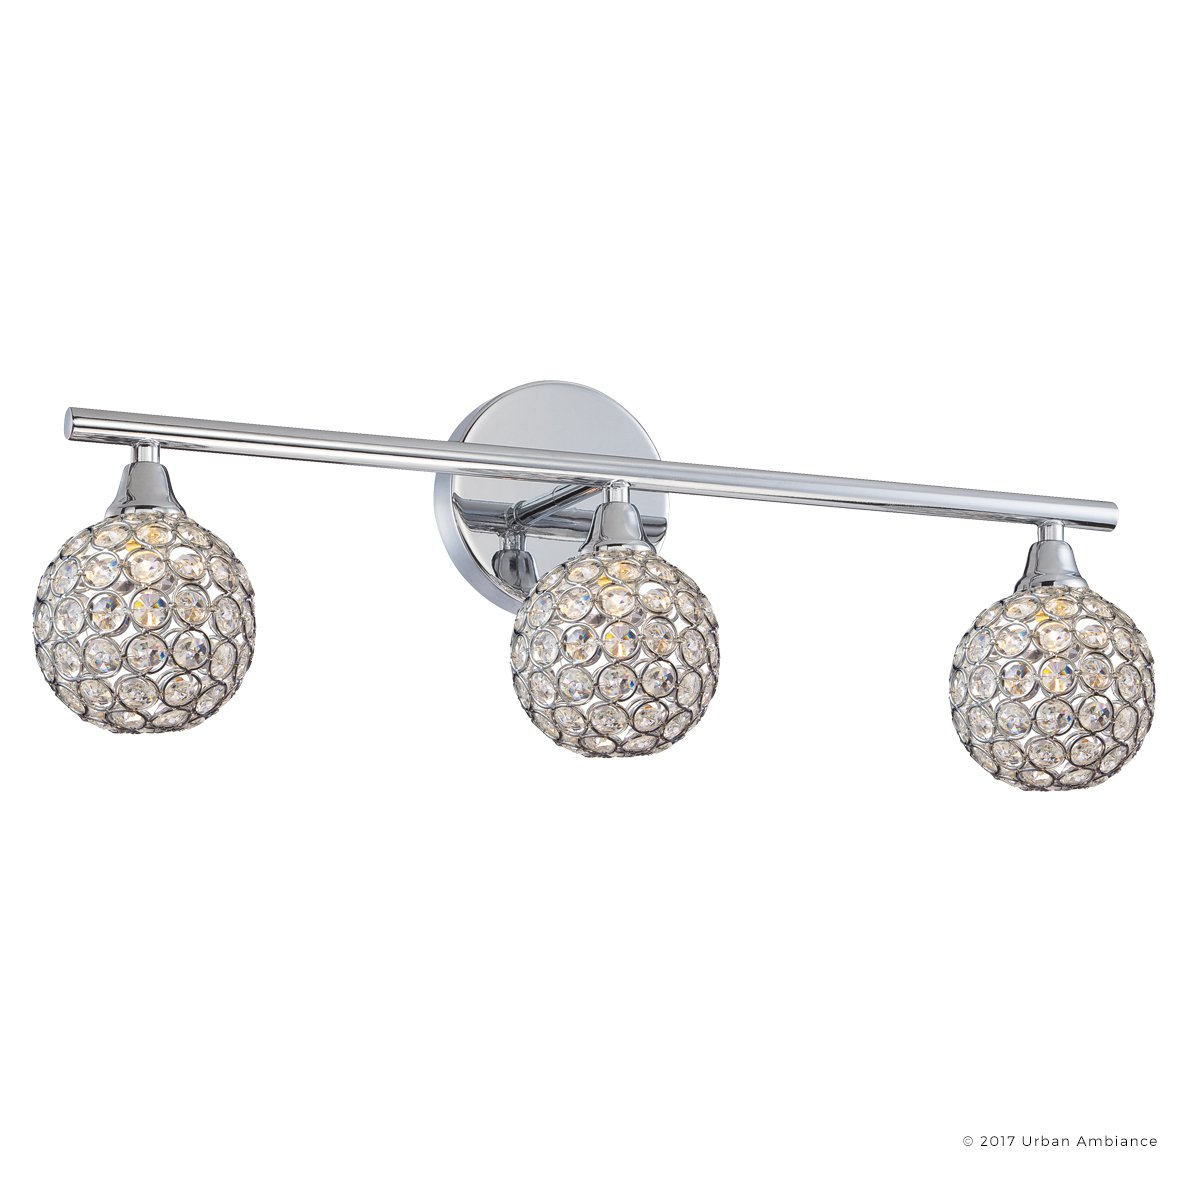 Luxury Crystal Globe LED Bathroom Vanity Light, Medium Size: 8''H x 23''W, with Modern Style Elements, Polished Chrome Finish and Crystal Studded Shades, G9 LED Technology, UQL2631 by Urban Ambiance